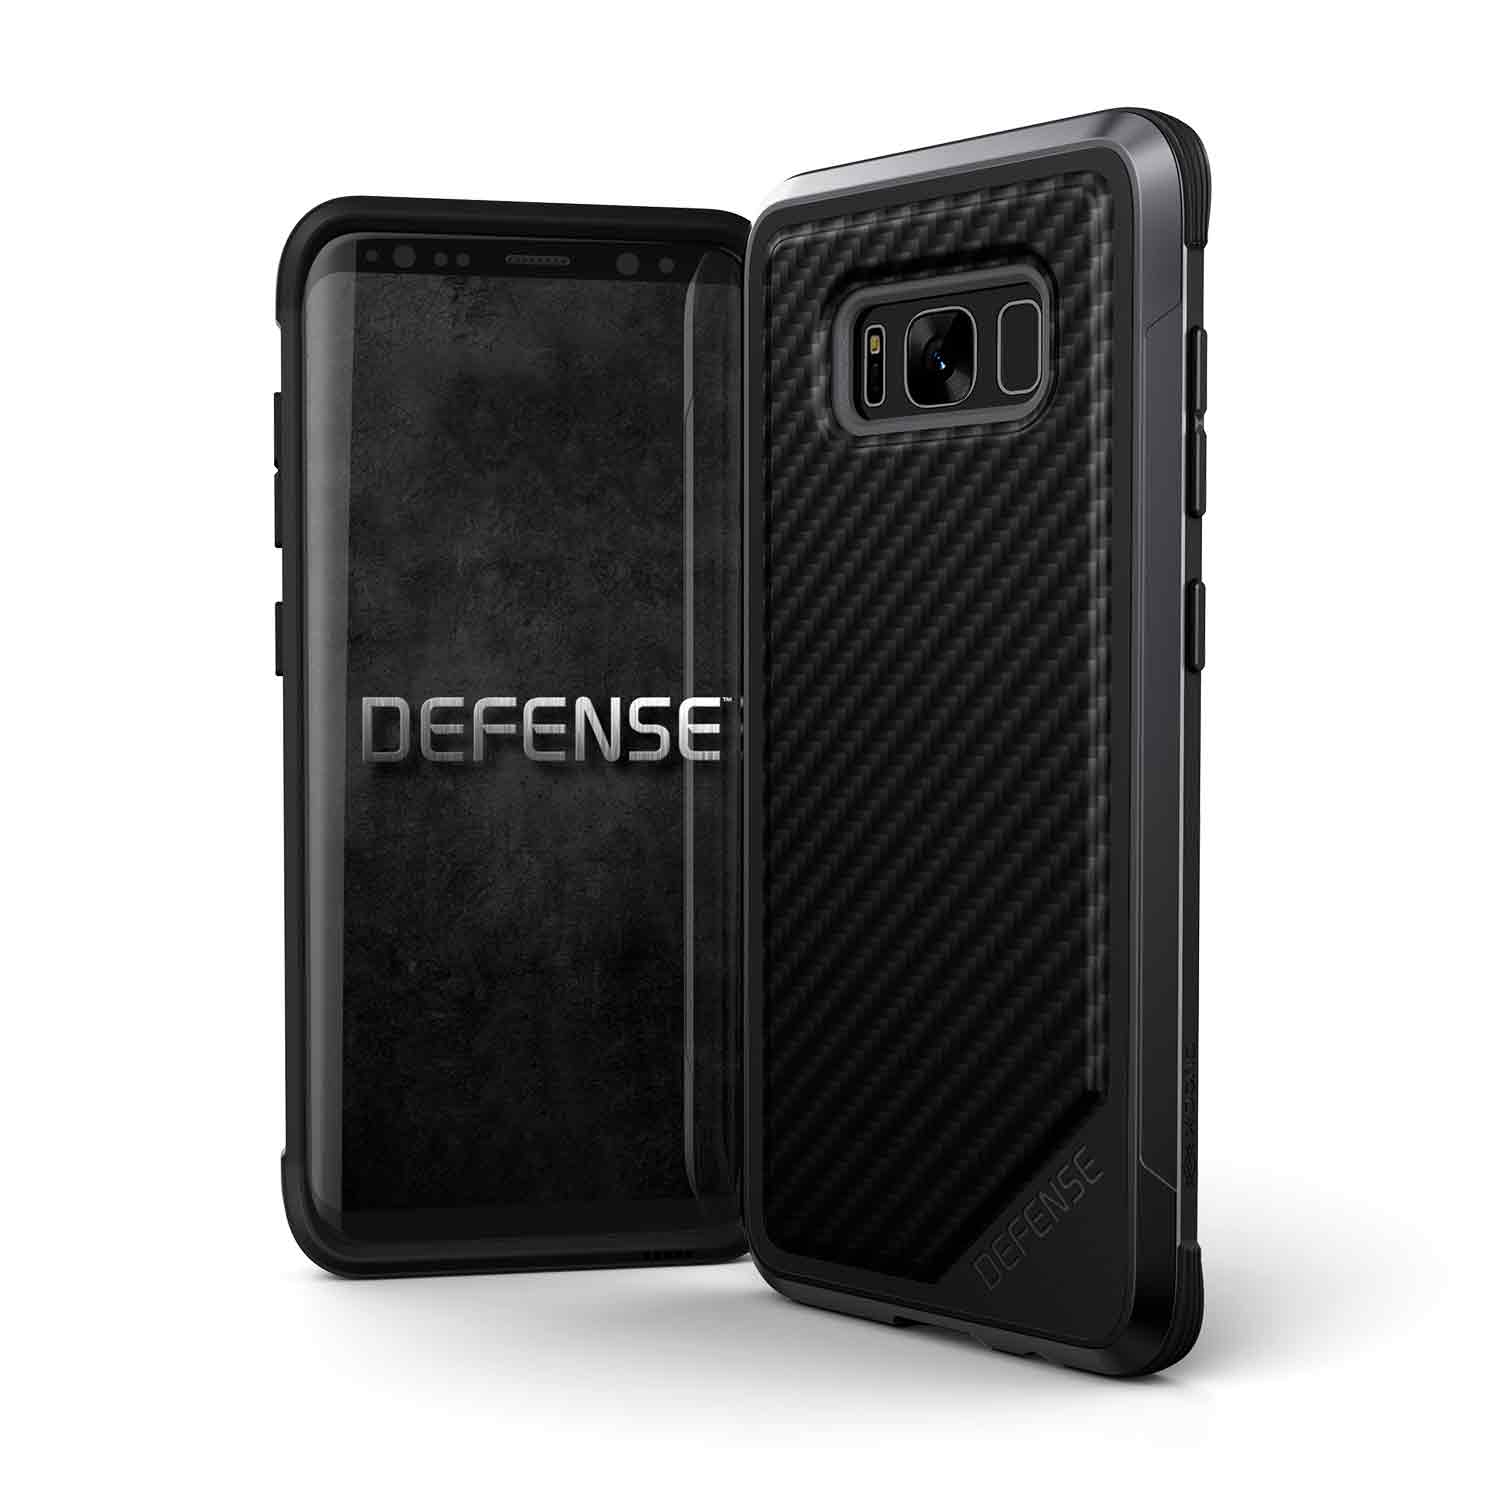 456692 DefenseLux GalaxyS8 Edge Plus BlackCarbonFiber